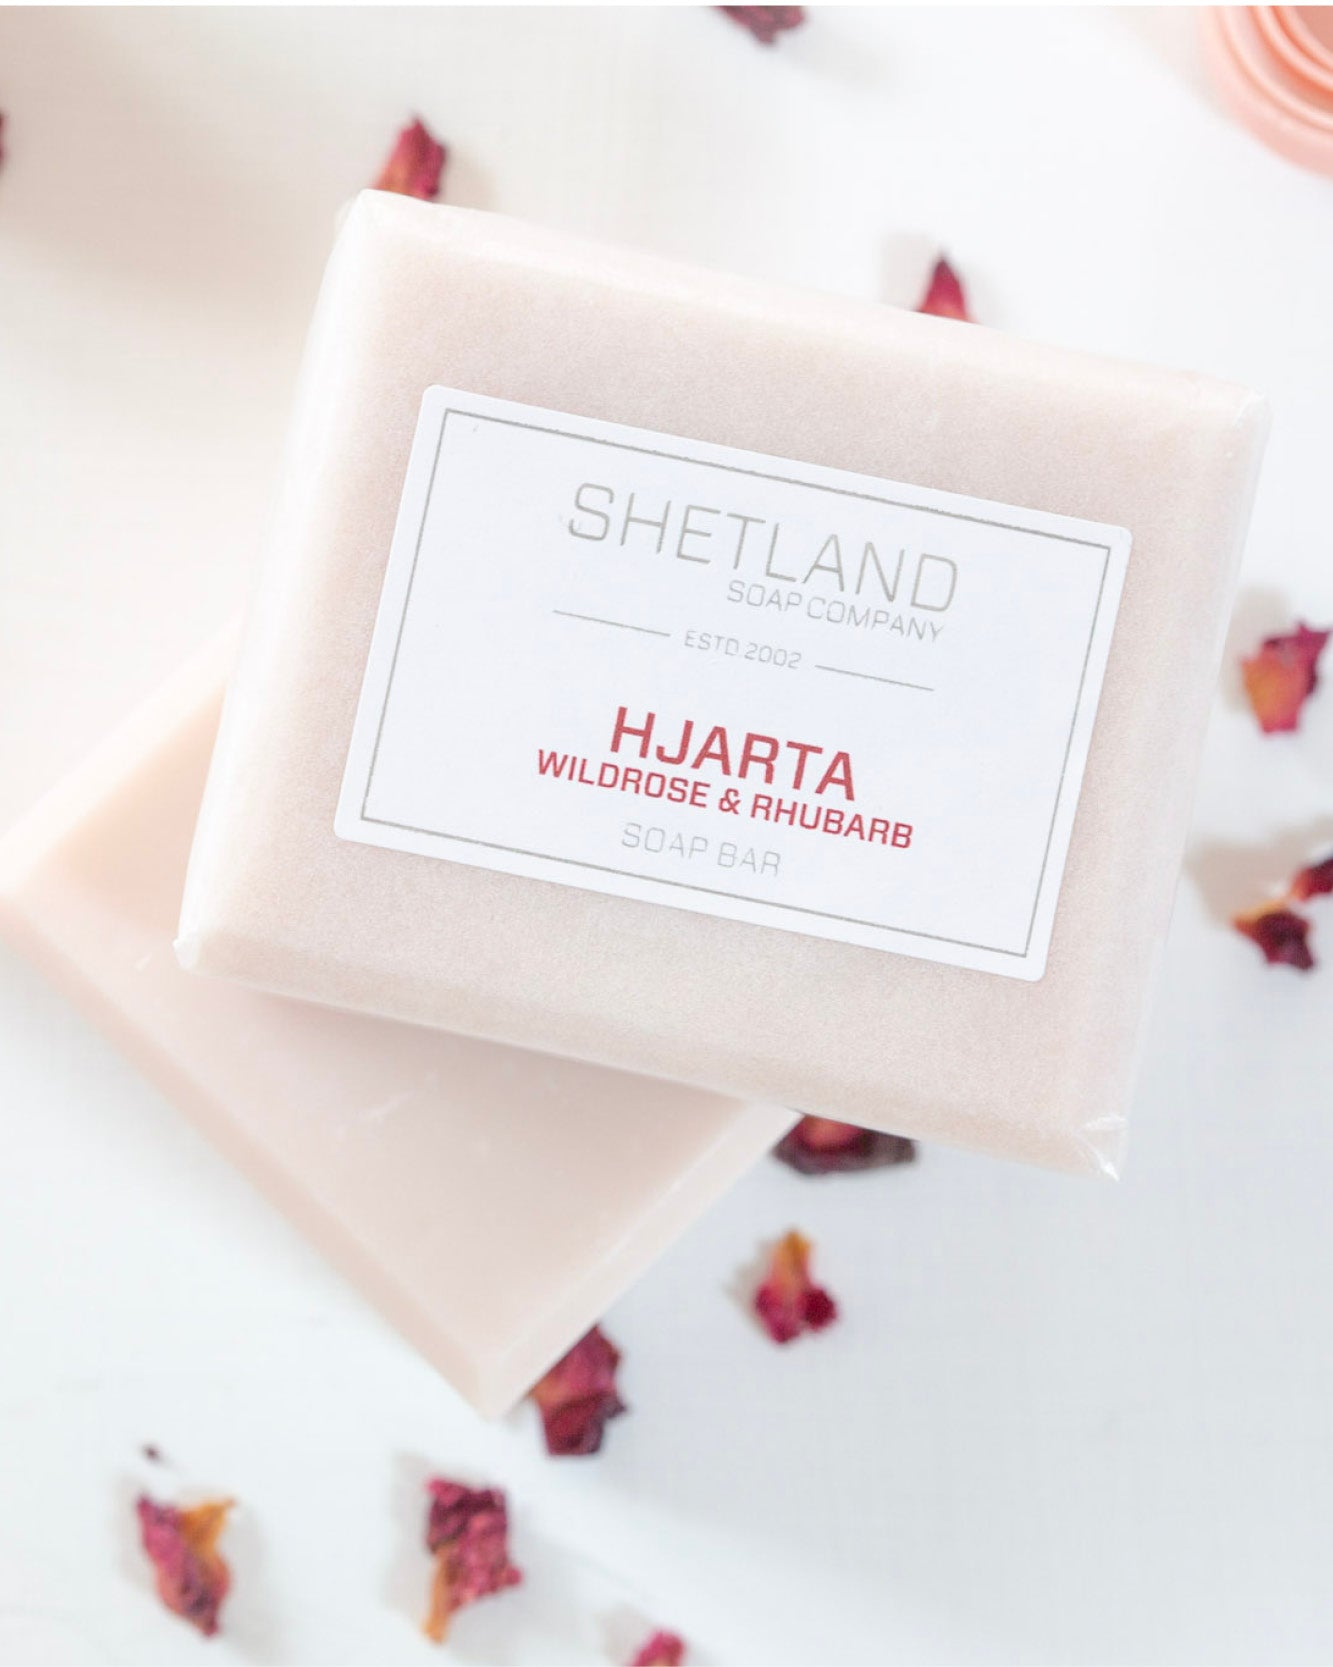 HJARTA SOAP BAR